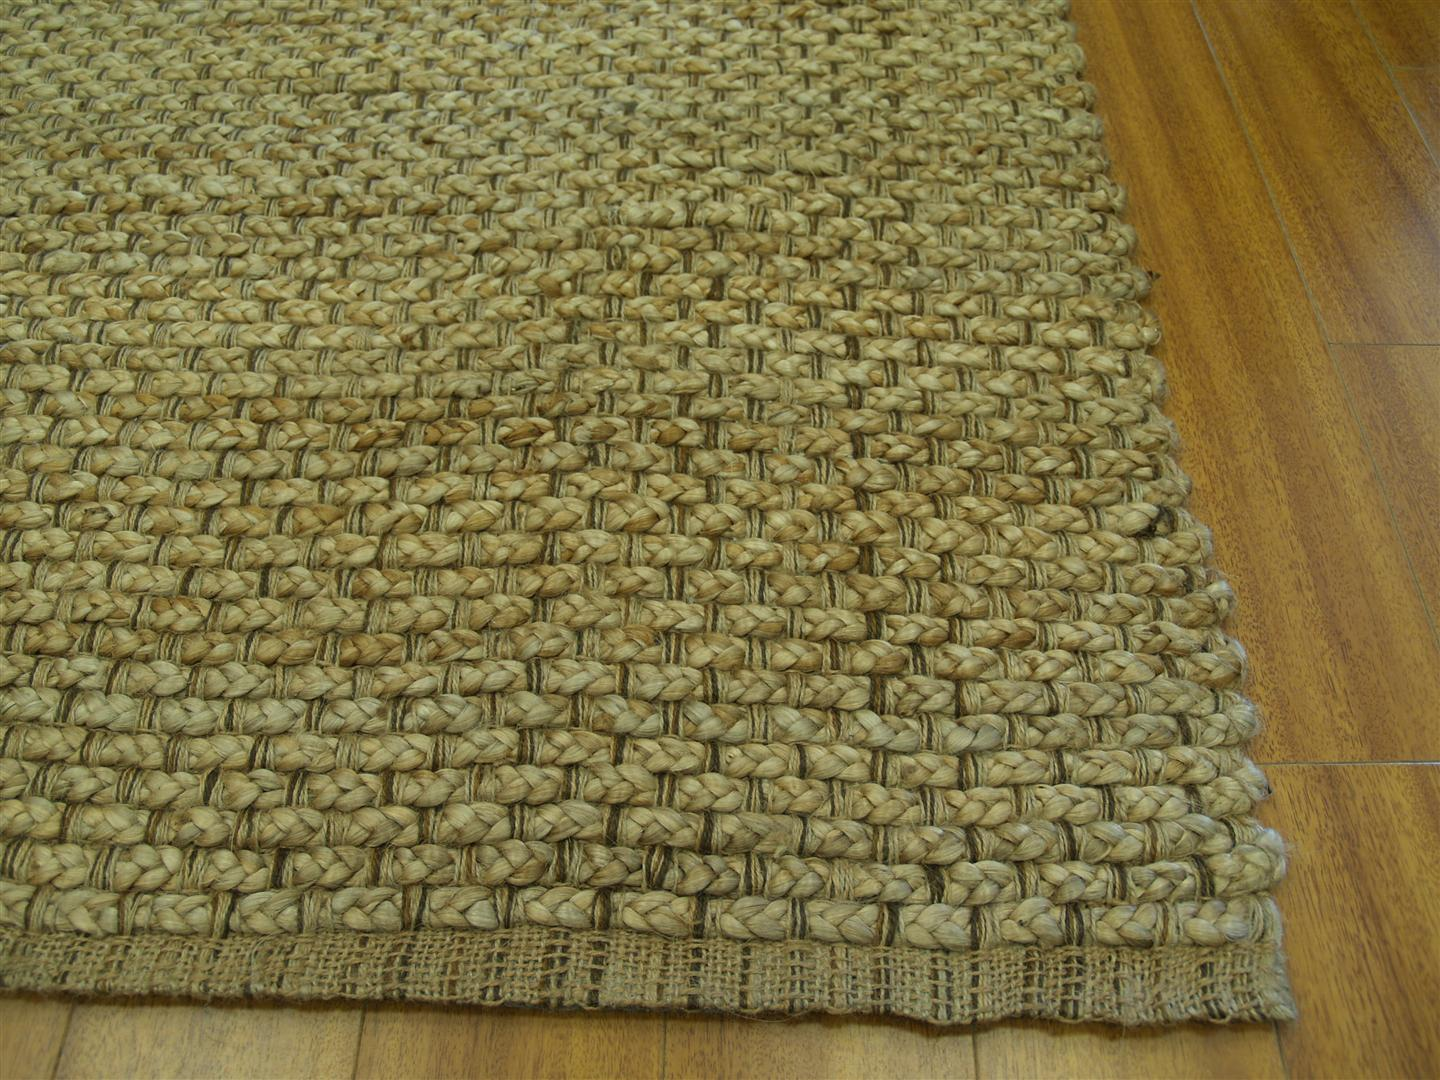 ikea round mats ideas play wool from natural mat architecture flooring rug sisal white in rugs shag home